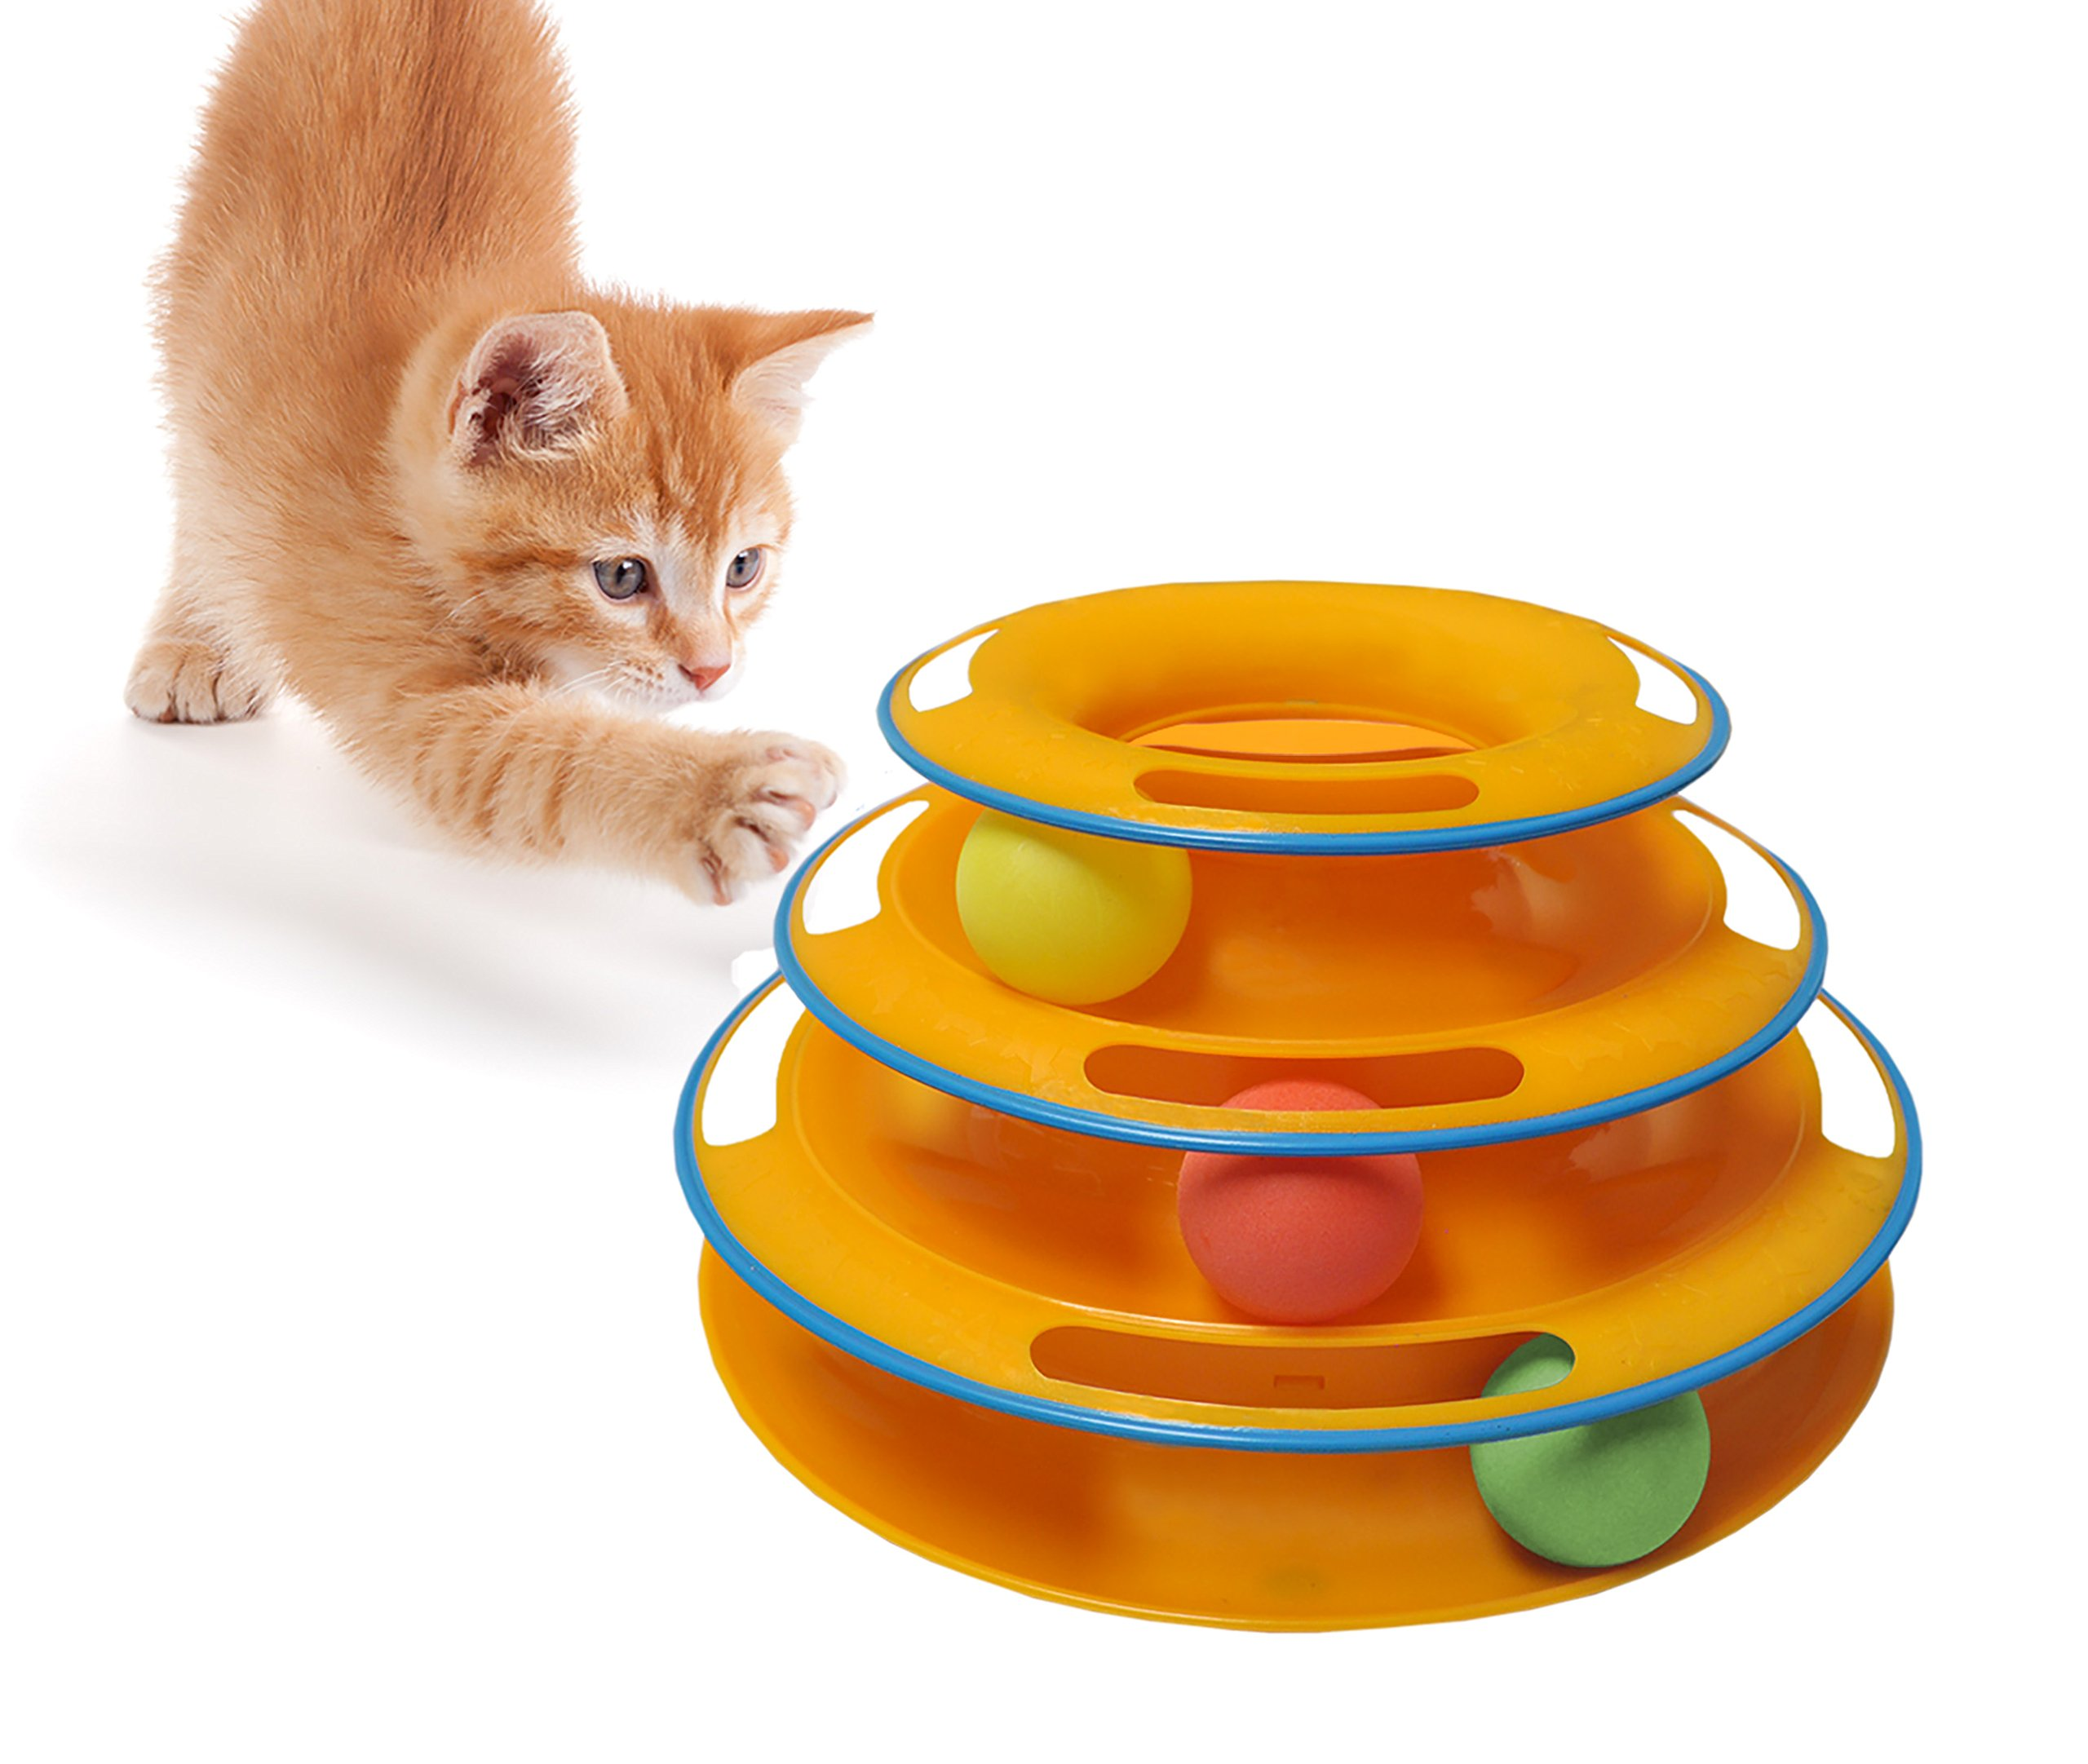 Purrfect Feline Titan's Tower - New Safer Bar Design, Interactive Cat Ball Toy, Exerciser Game, Teaser, Anti-Slip, Active Healthy Lifestyle, Suitable for Multiple Cats (Orange) by Purrfect Feline (Image #1)